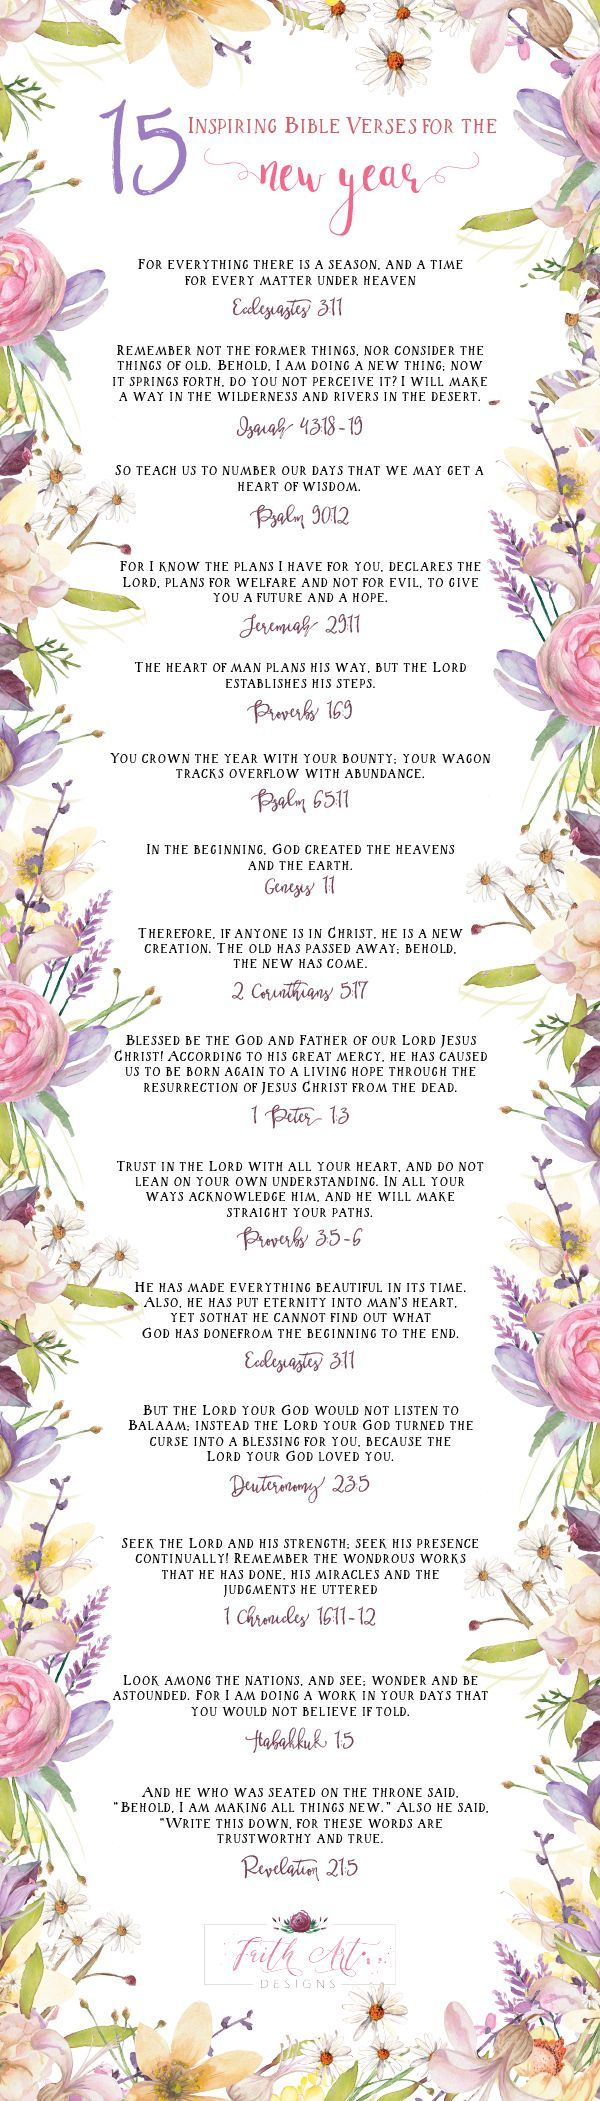 Small Crop Of New Year Scripture